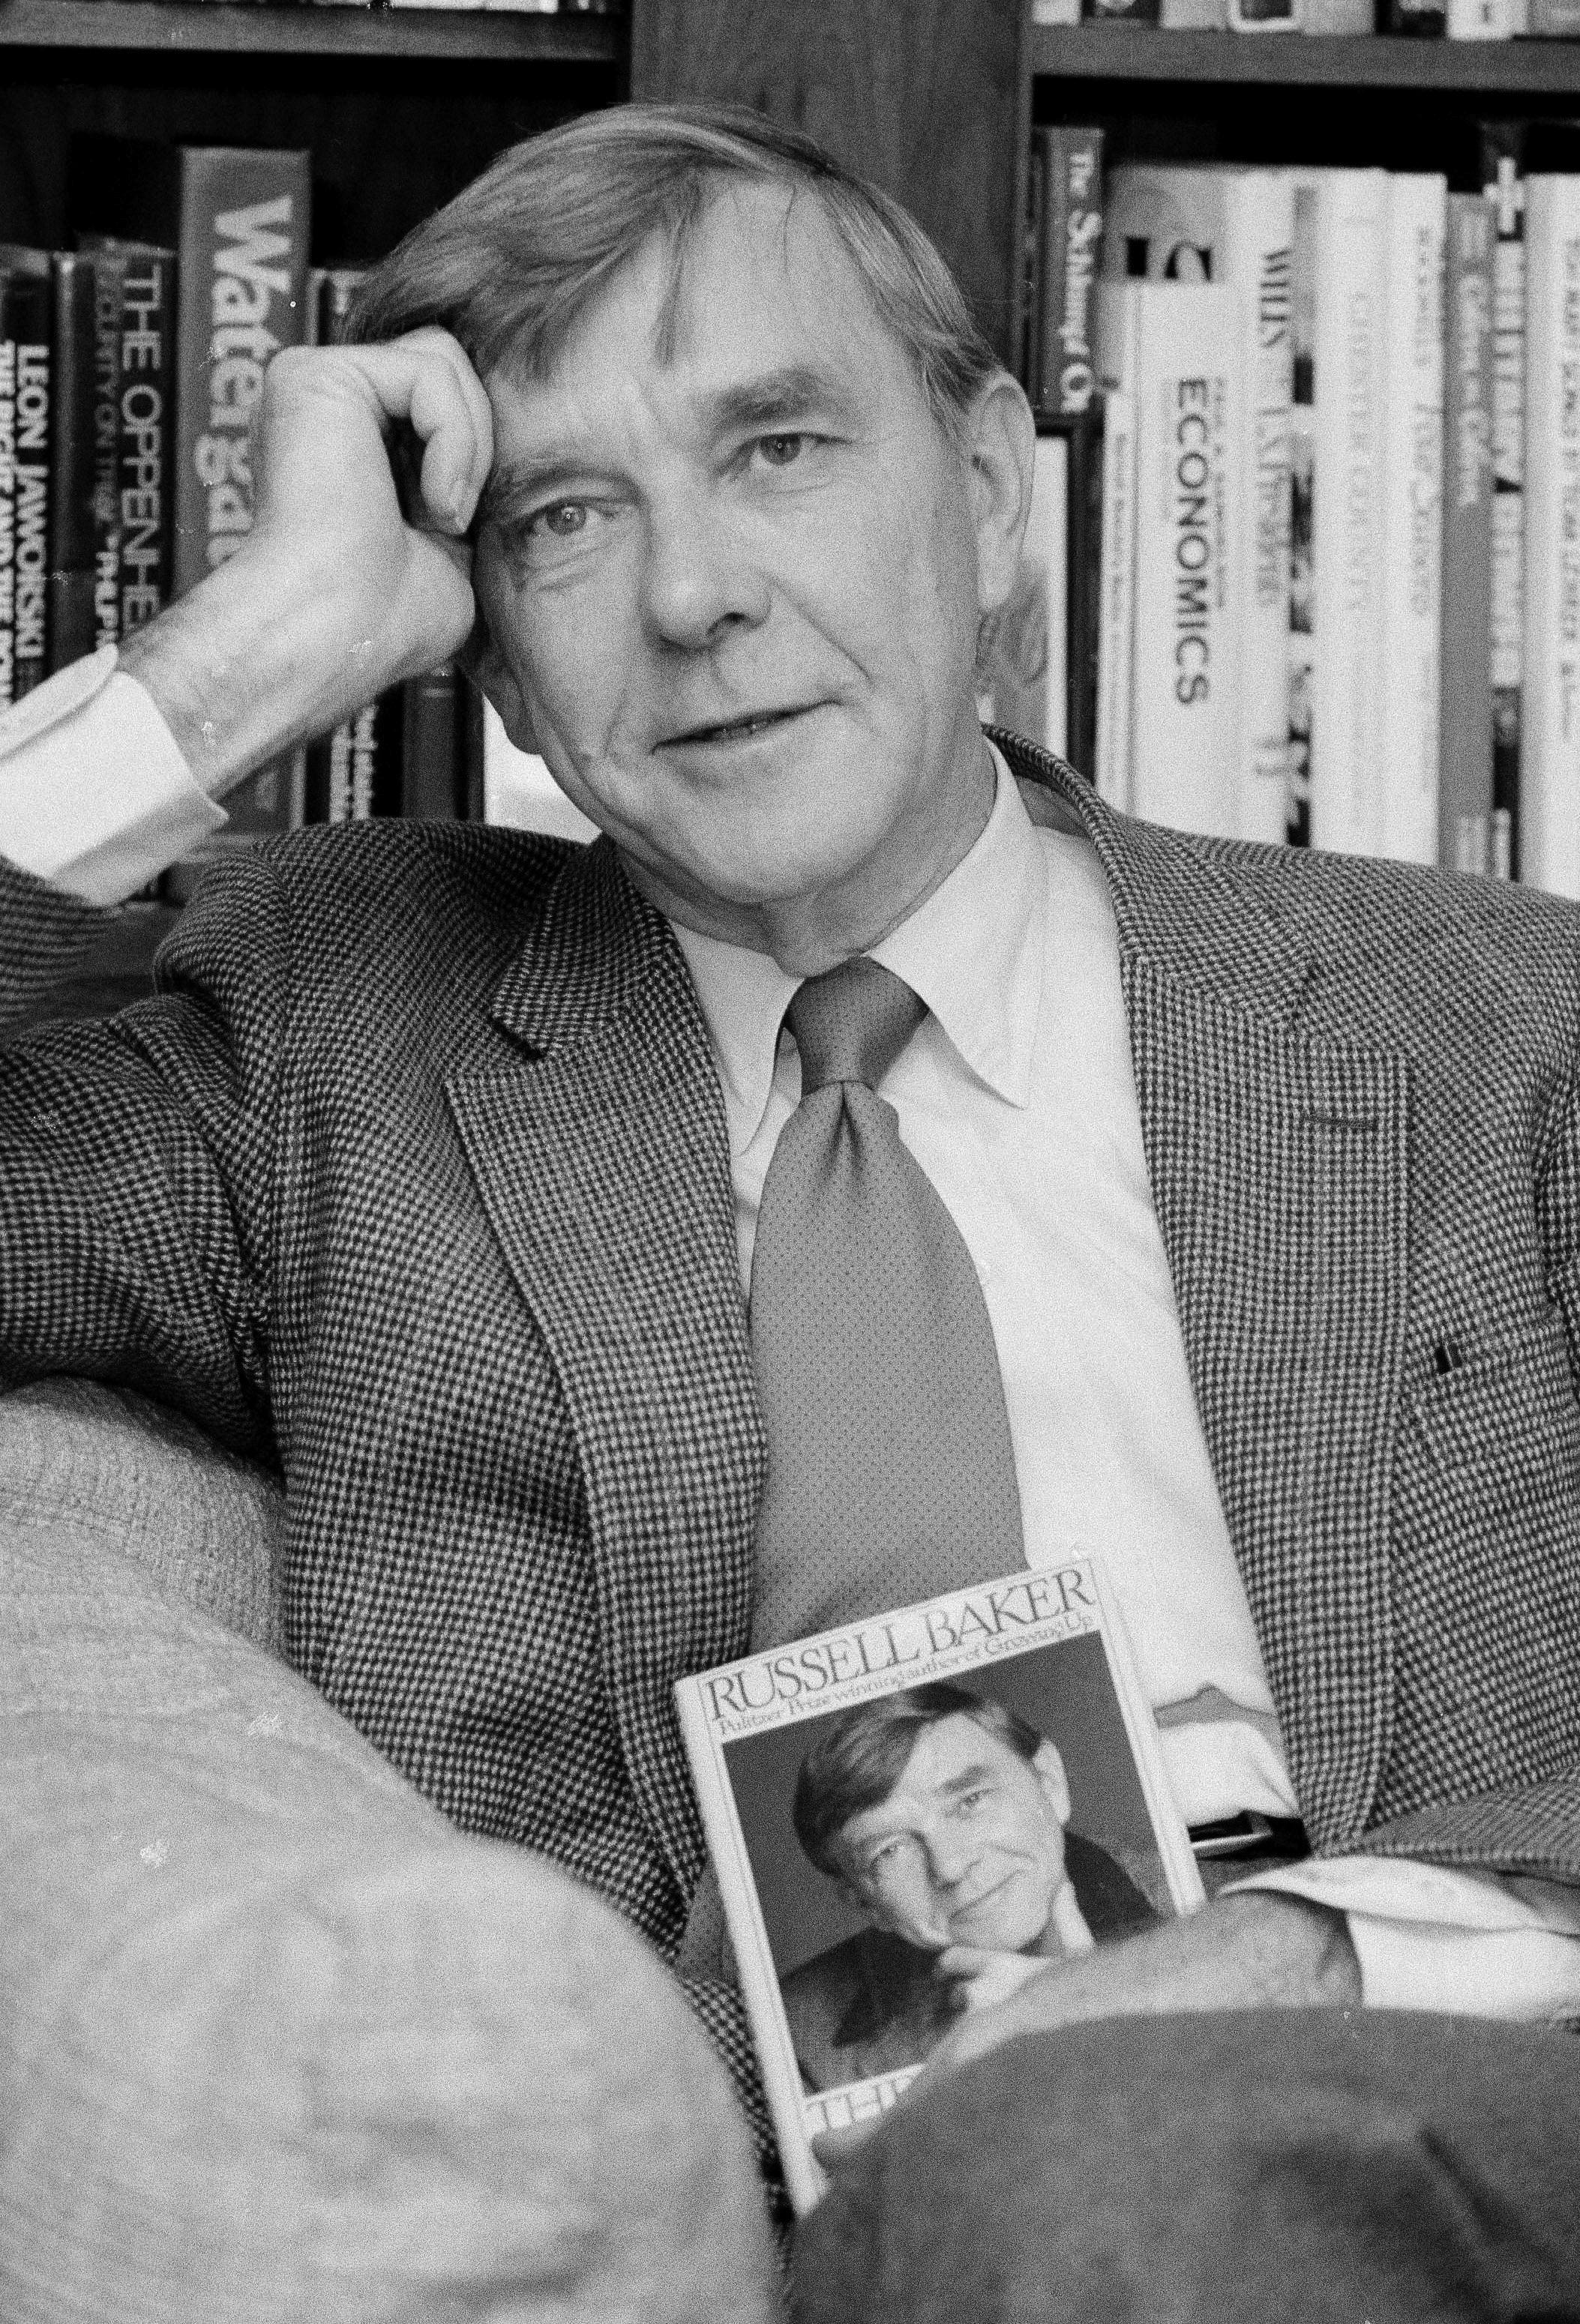 Russell Baker, Pulitzer Prize winner and former New York Times columnist, dies at 93